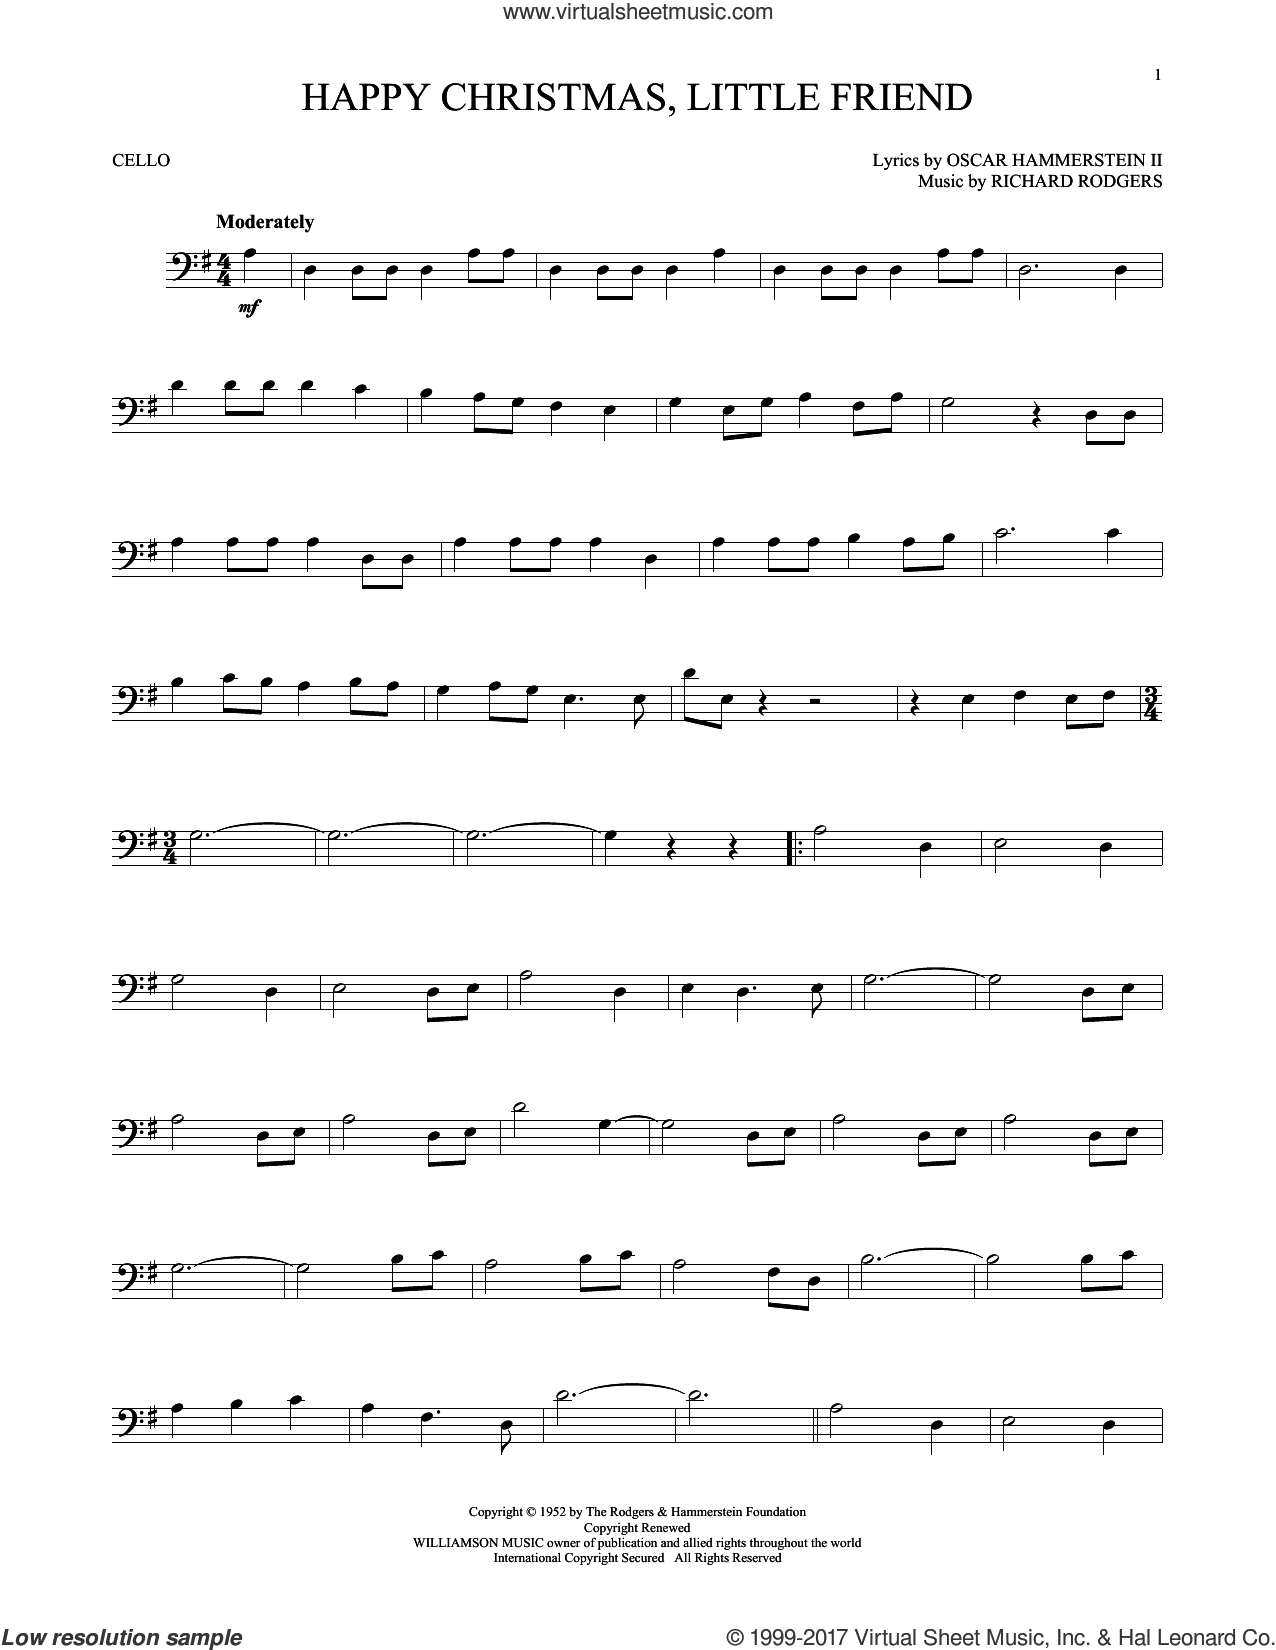 Happy Christmas, Little Friend sheet music for cello solo by Rodgers & Hammerstein, Oscar II Hammerstein and Richard Rodgers. Score Image Preview.